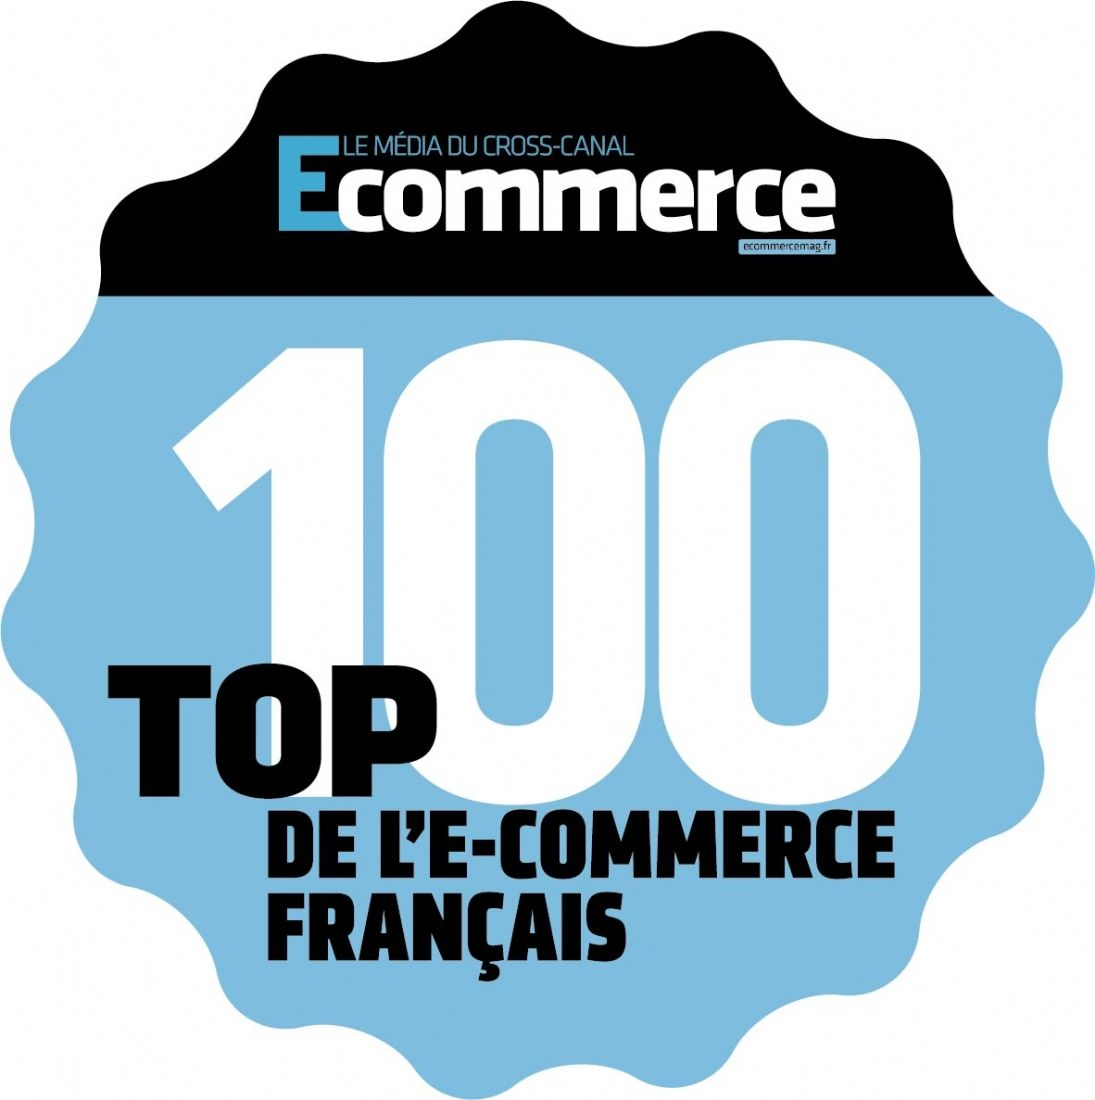 [Top 100] Les 100 sites marchands qui comptent en 2017